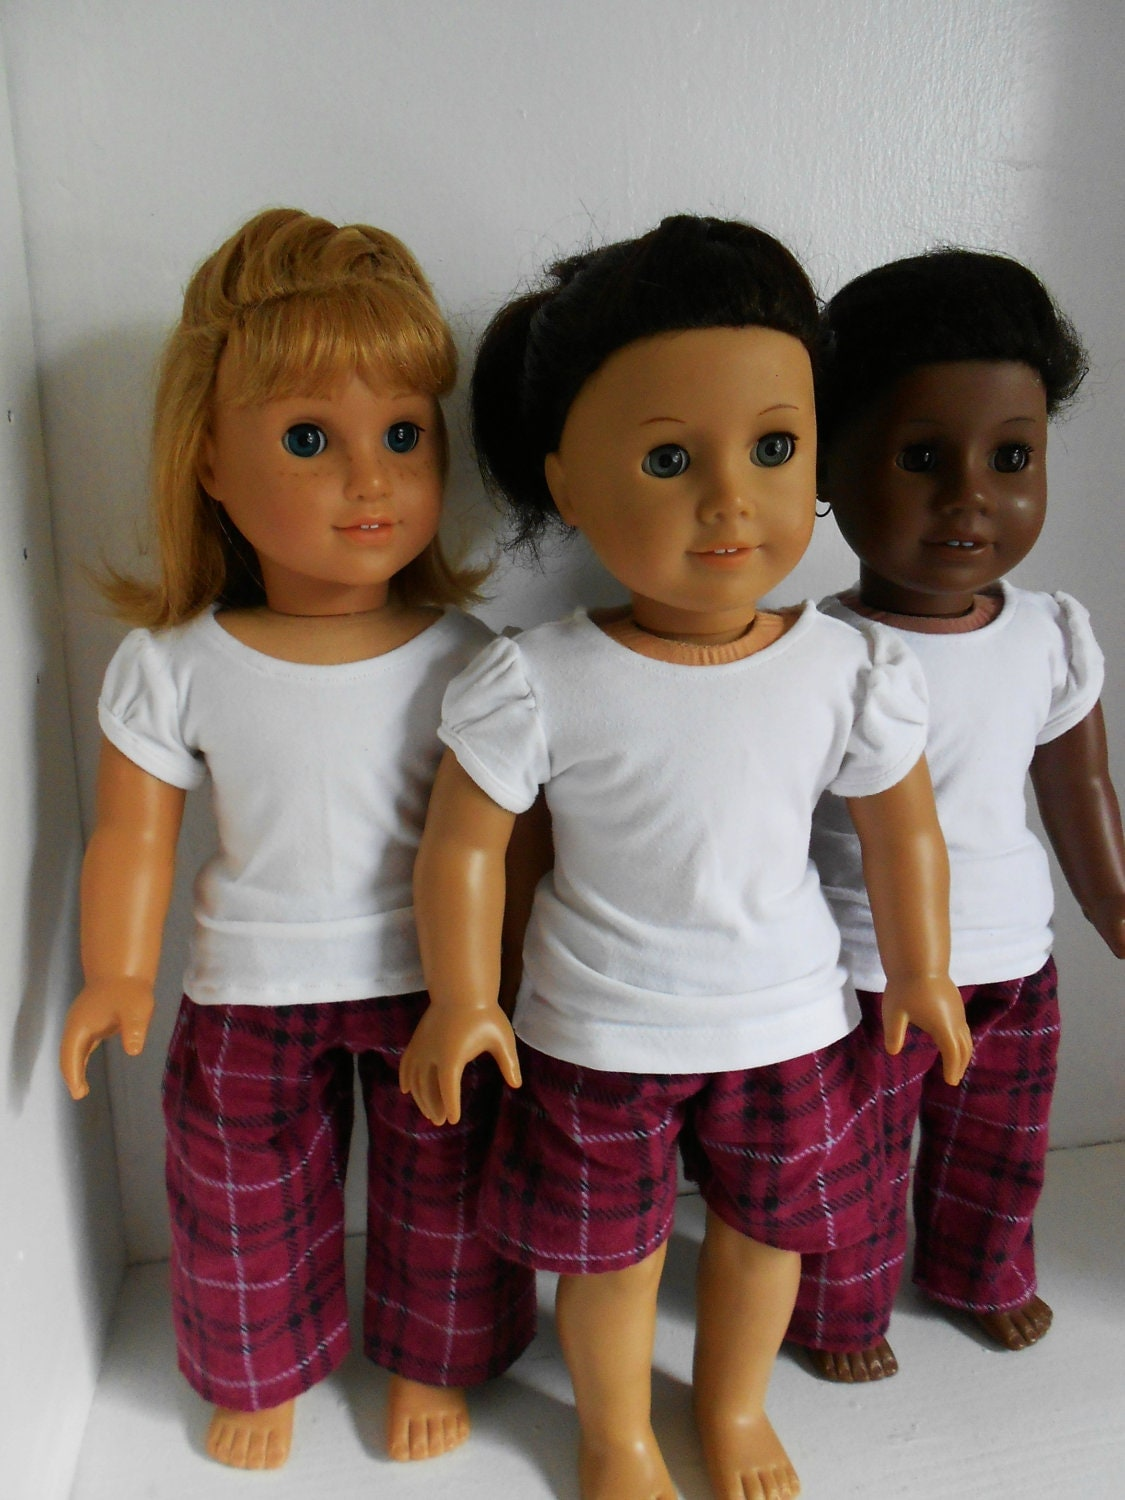 Plaid Flannel Pants and Tee Shirt Pajama Set for American Girl Dolls by DolzDreamzzz